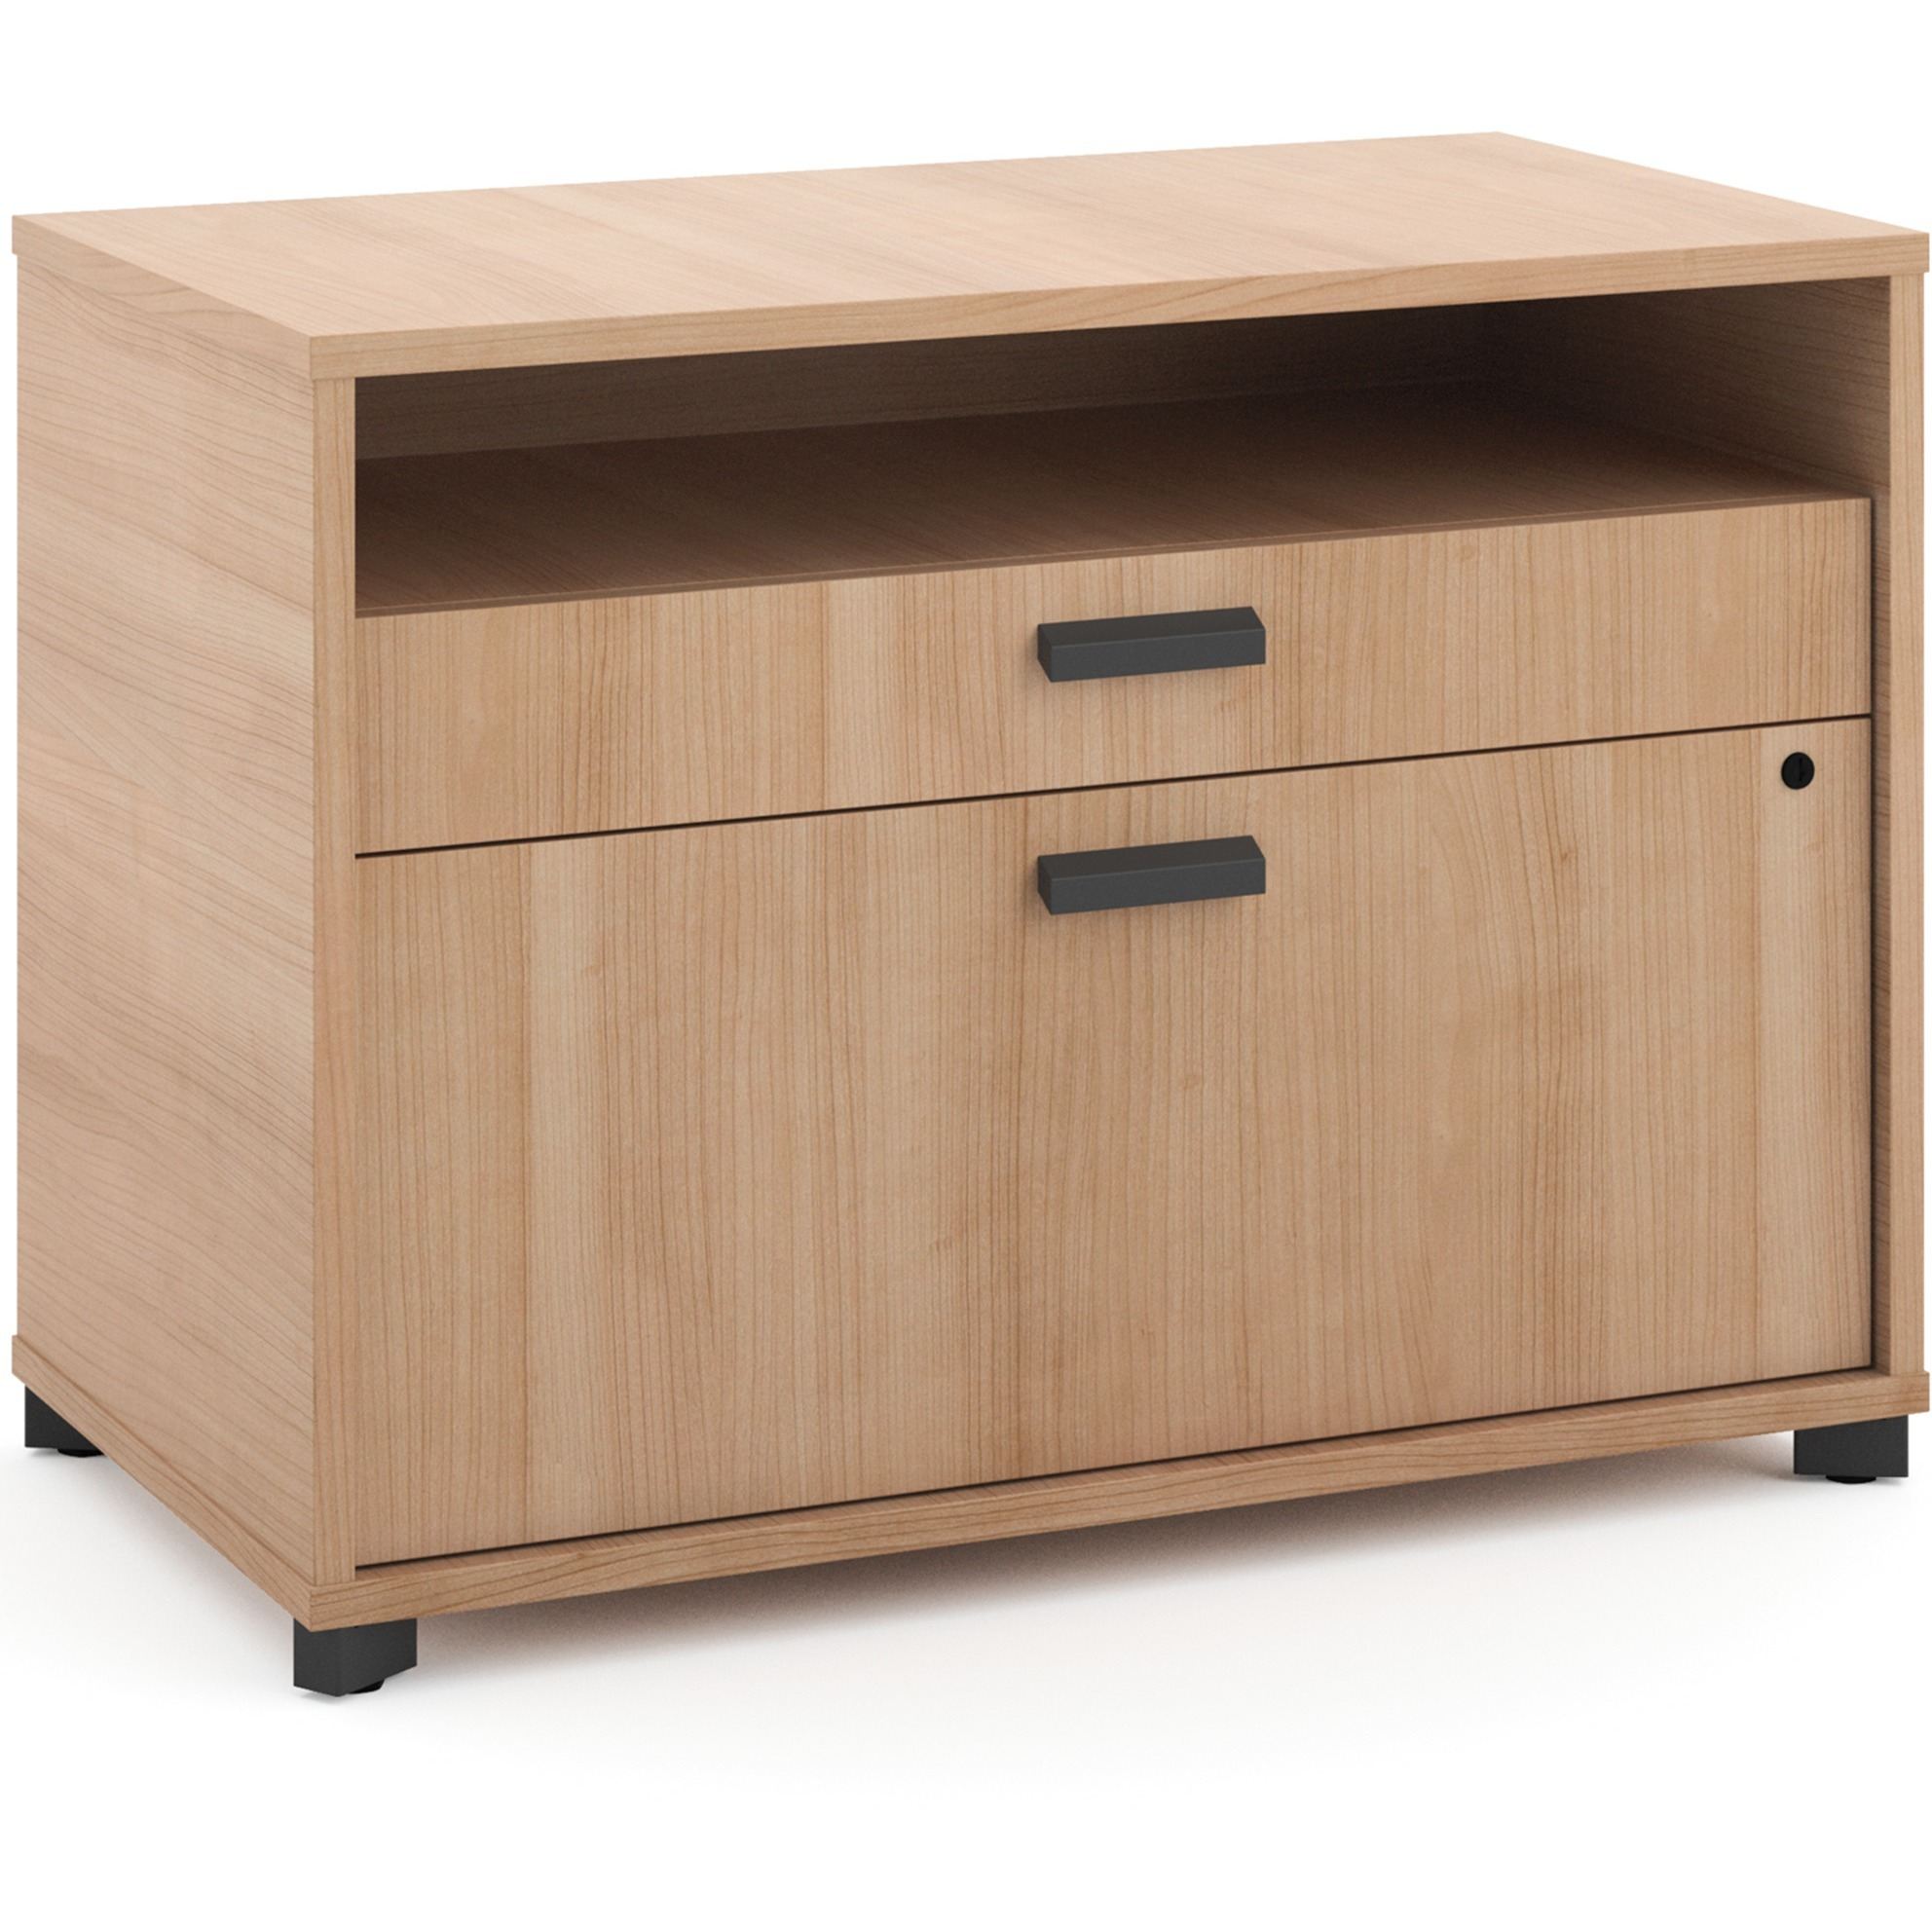 Basyx by HON, BSXMG30FDWHA1, Manage Series Wheat Office Furniture Collection, 1 Each